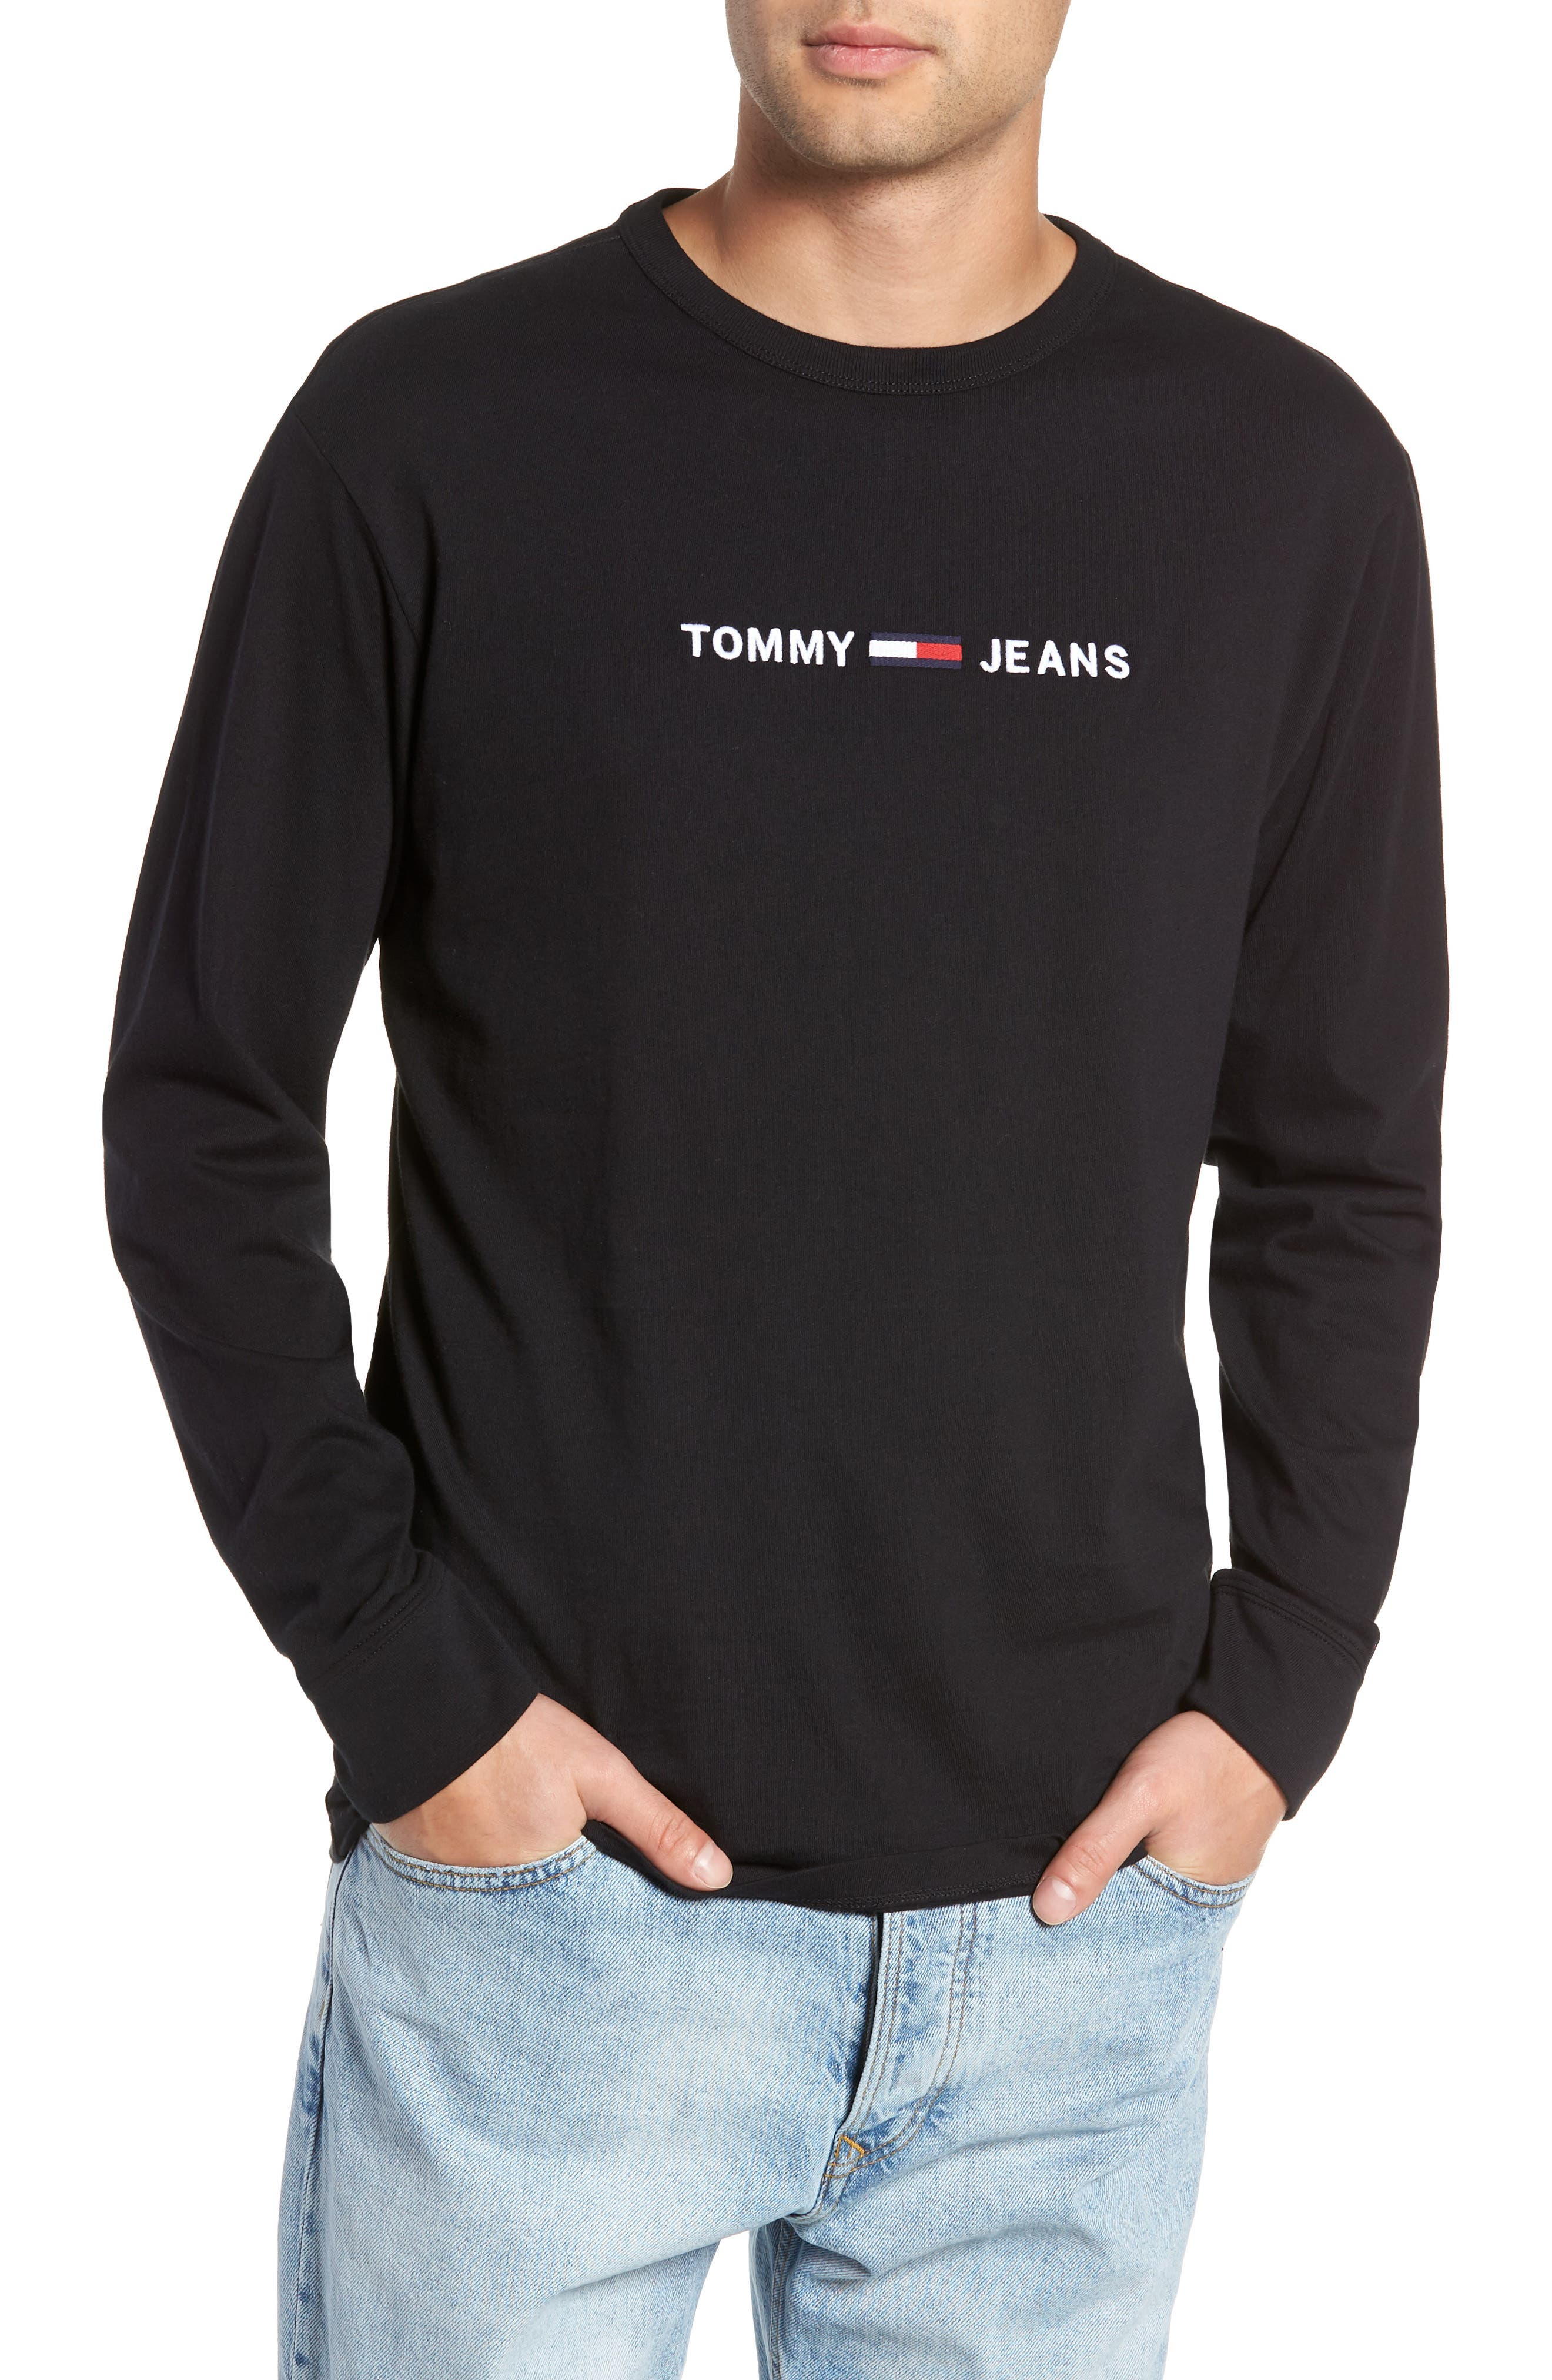 TOMMY JEANS TJM Logo Graphic Long Sleeve T-Shirt, Main, color, 001